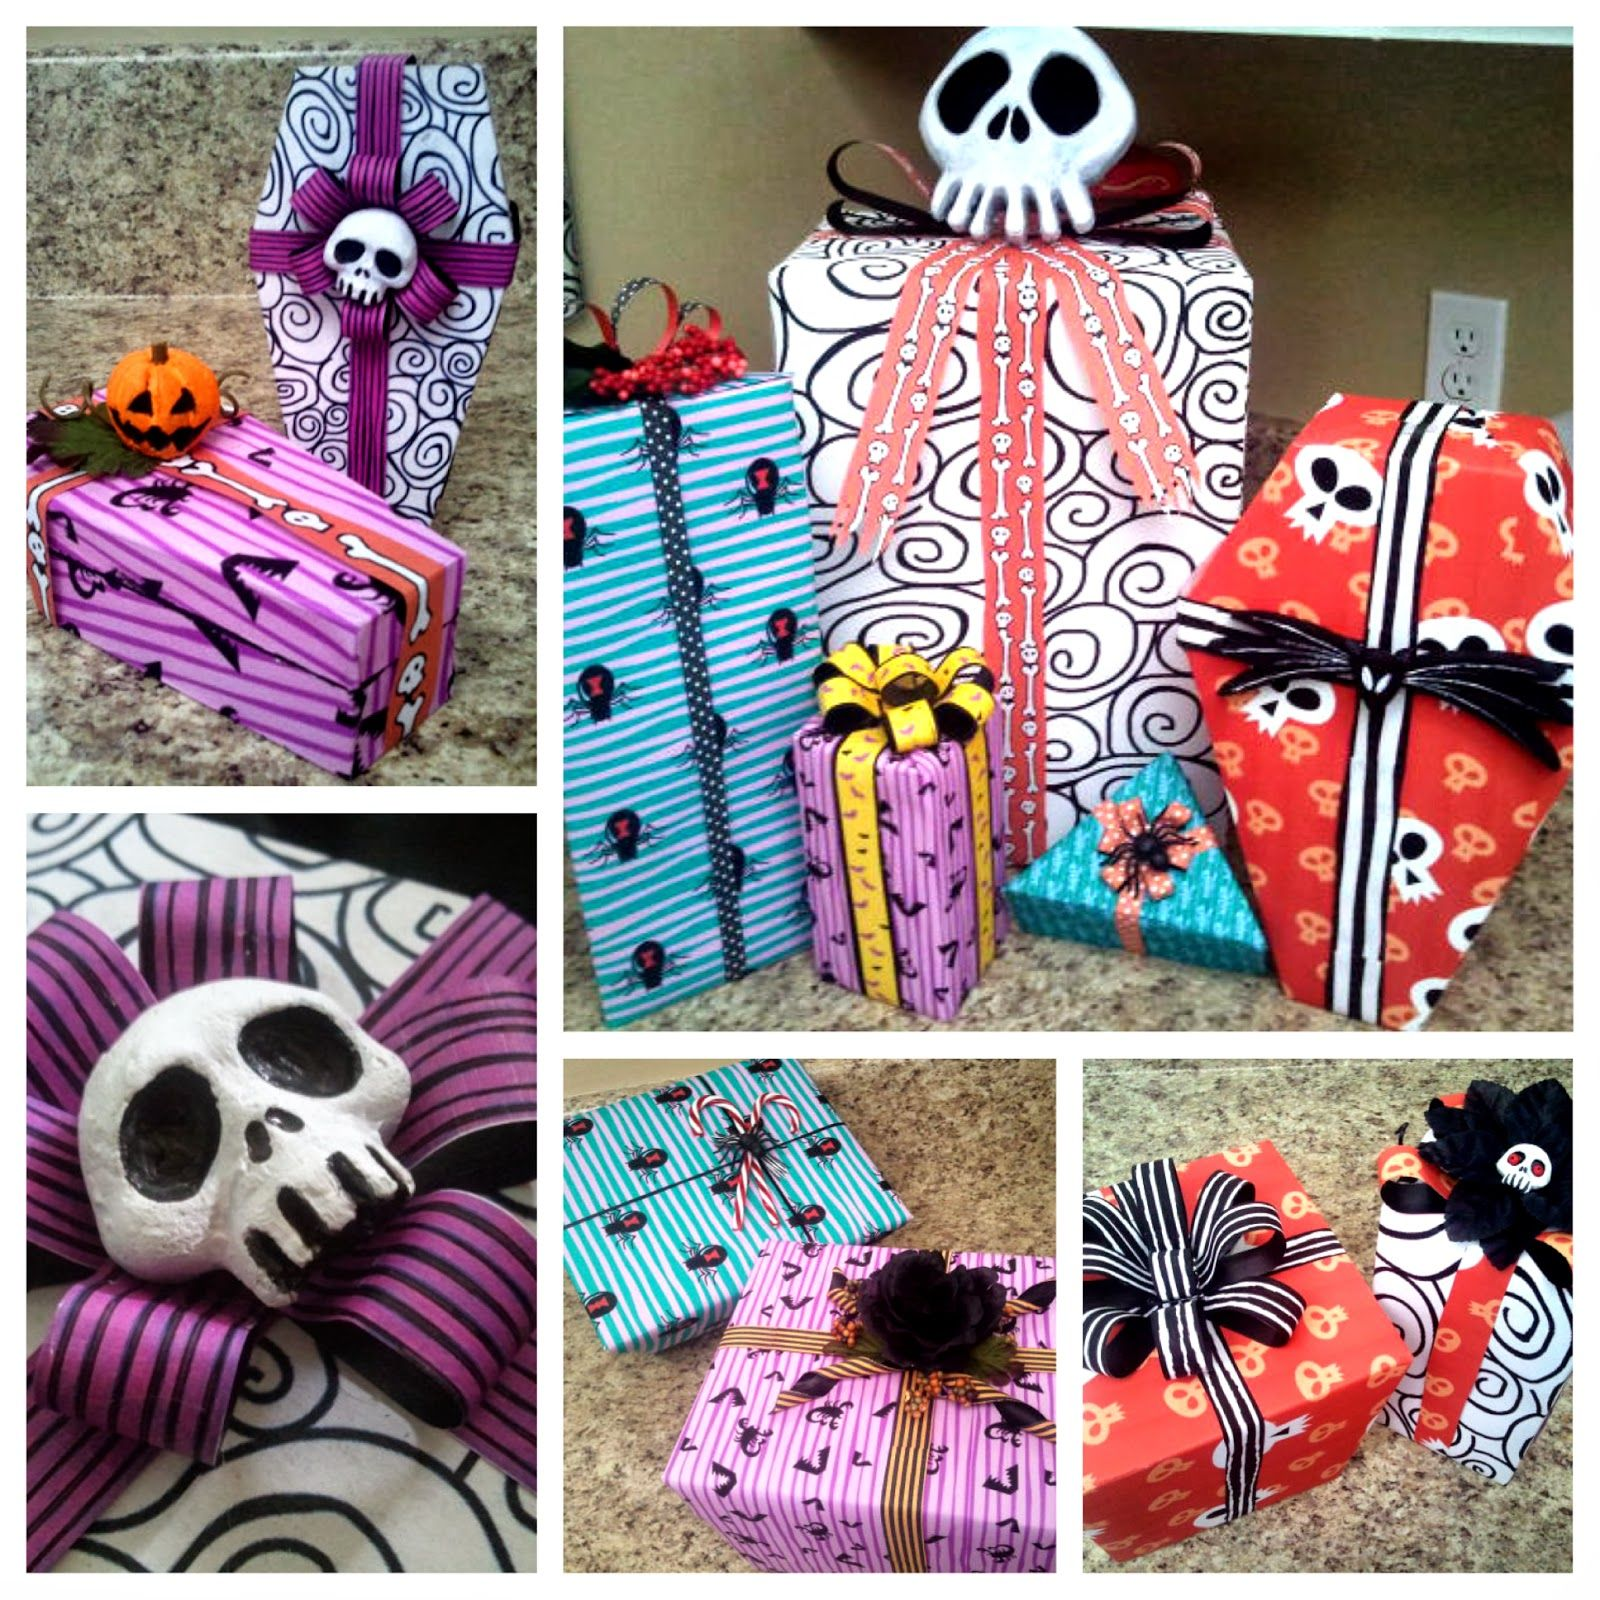 Nightmare Before Christmas Wrapping Paper DIY Tutorial